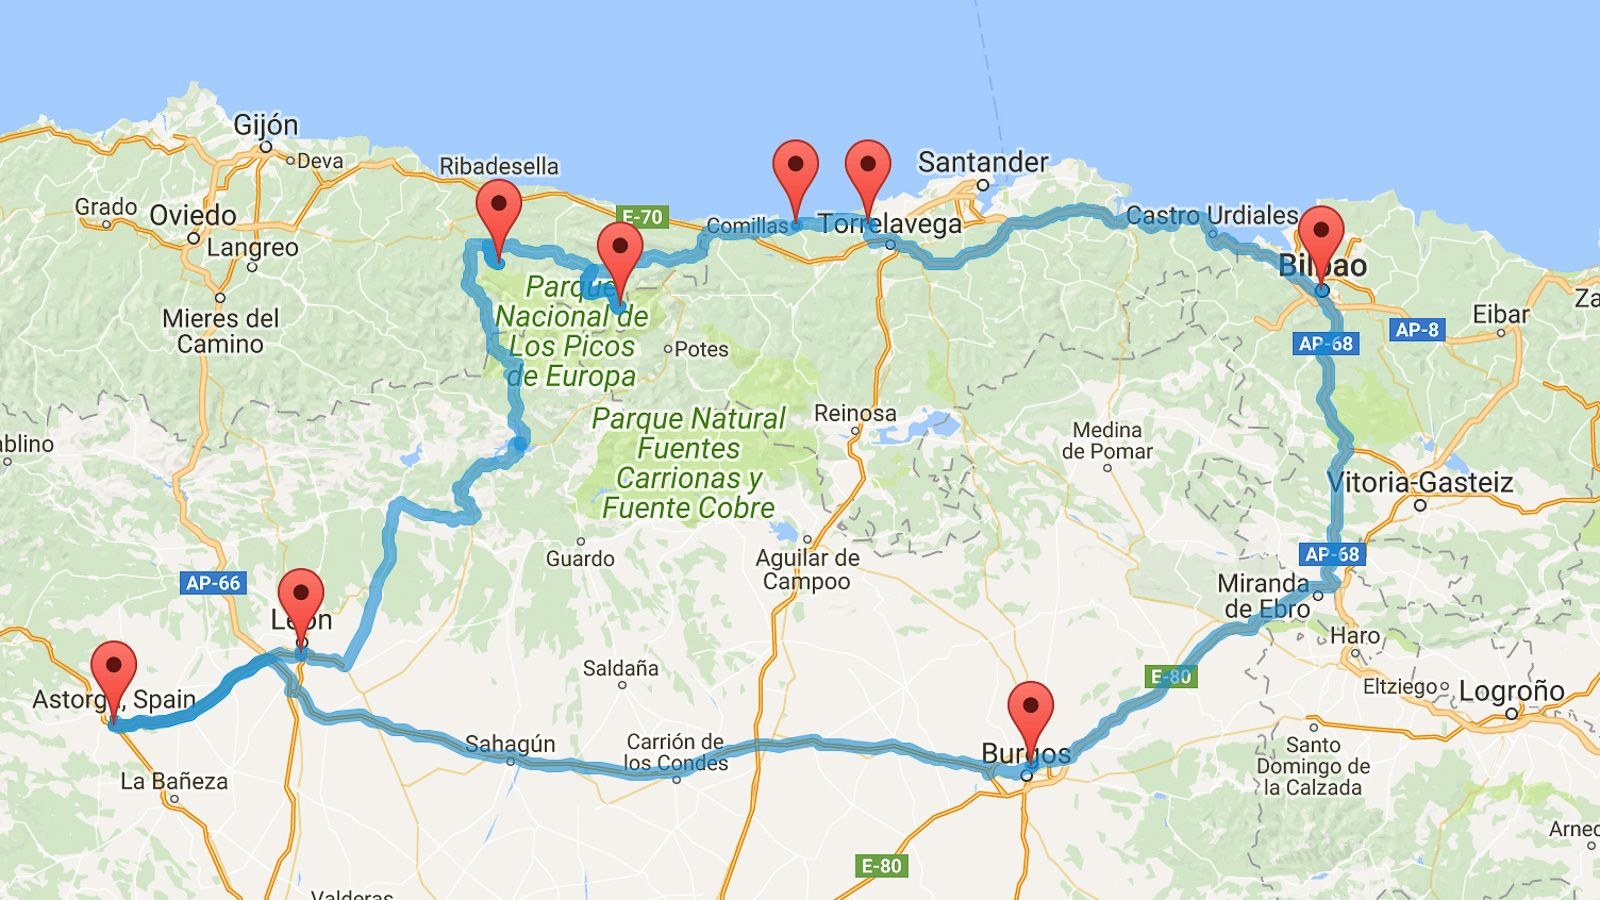 North Of Spain Map.The Perfect Northern Spain Road Trip Itinerary Portugal Spain